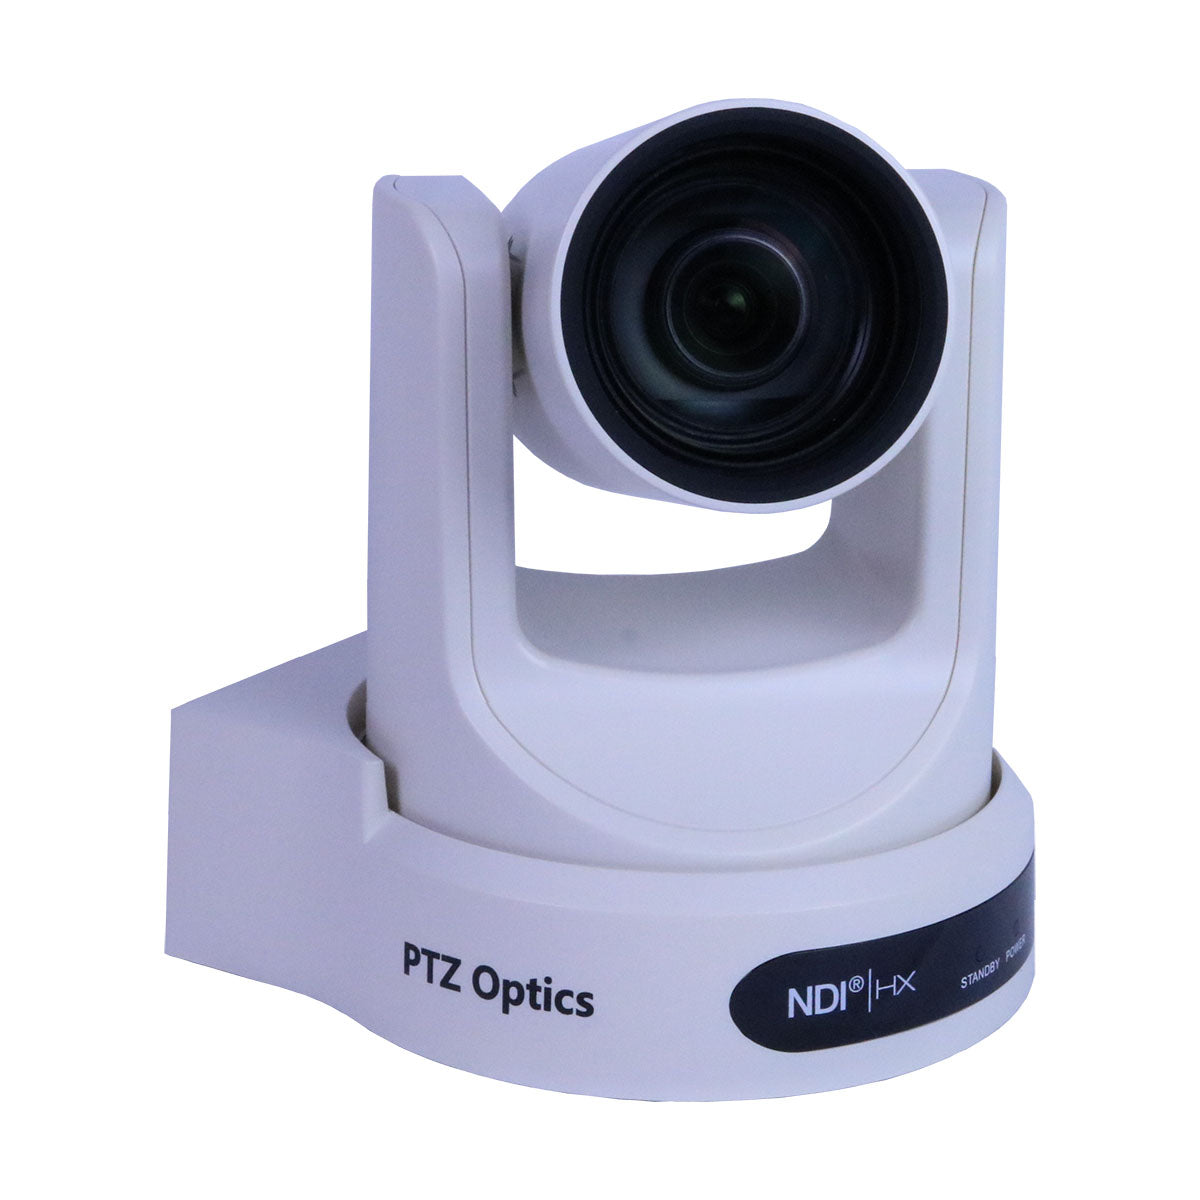 PTZ Optics PT30X NDI WH